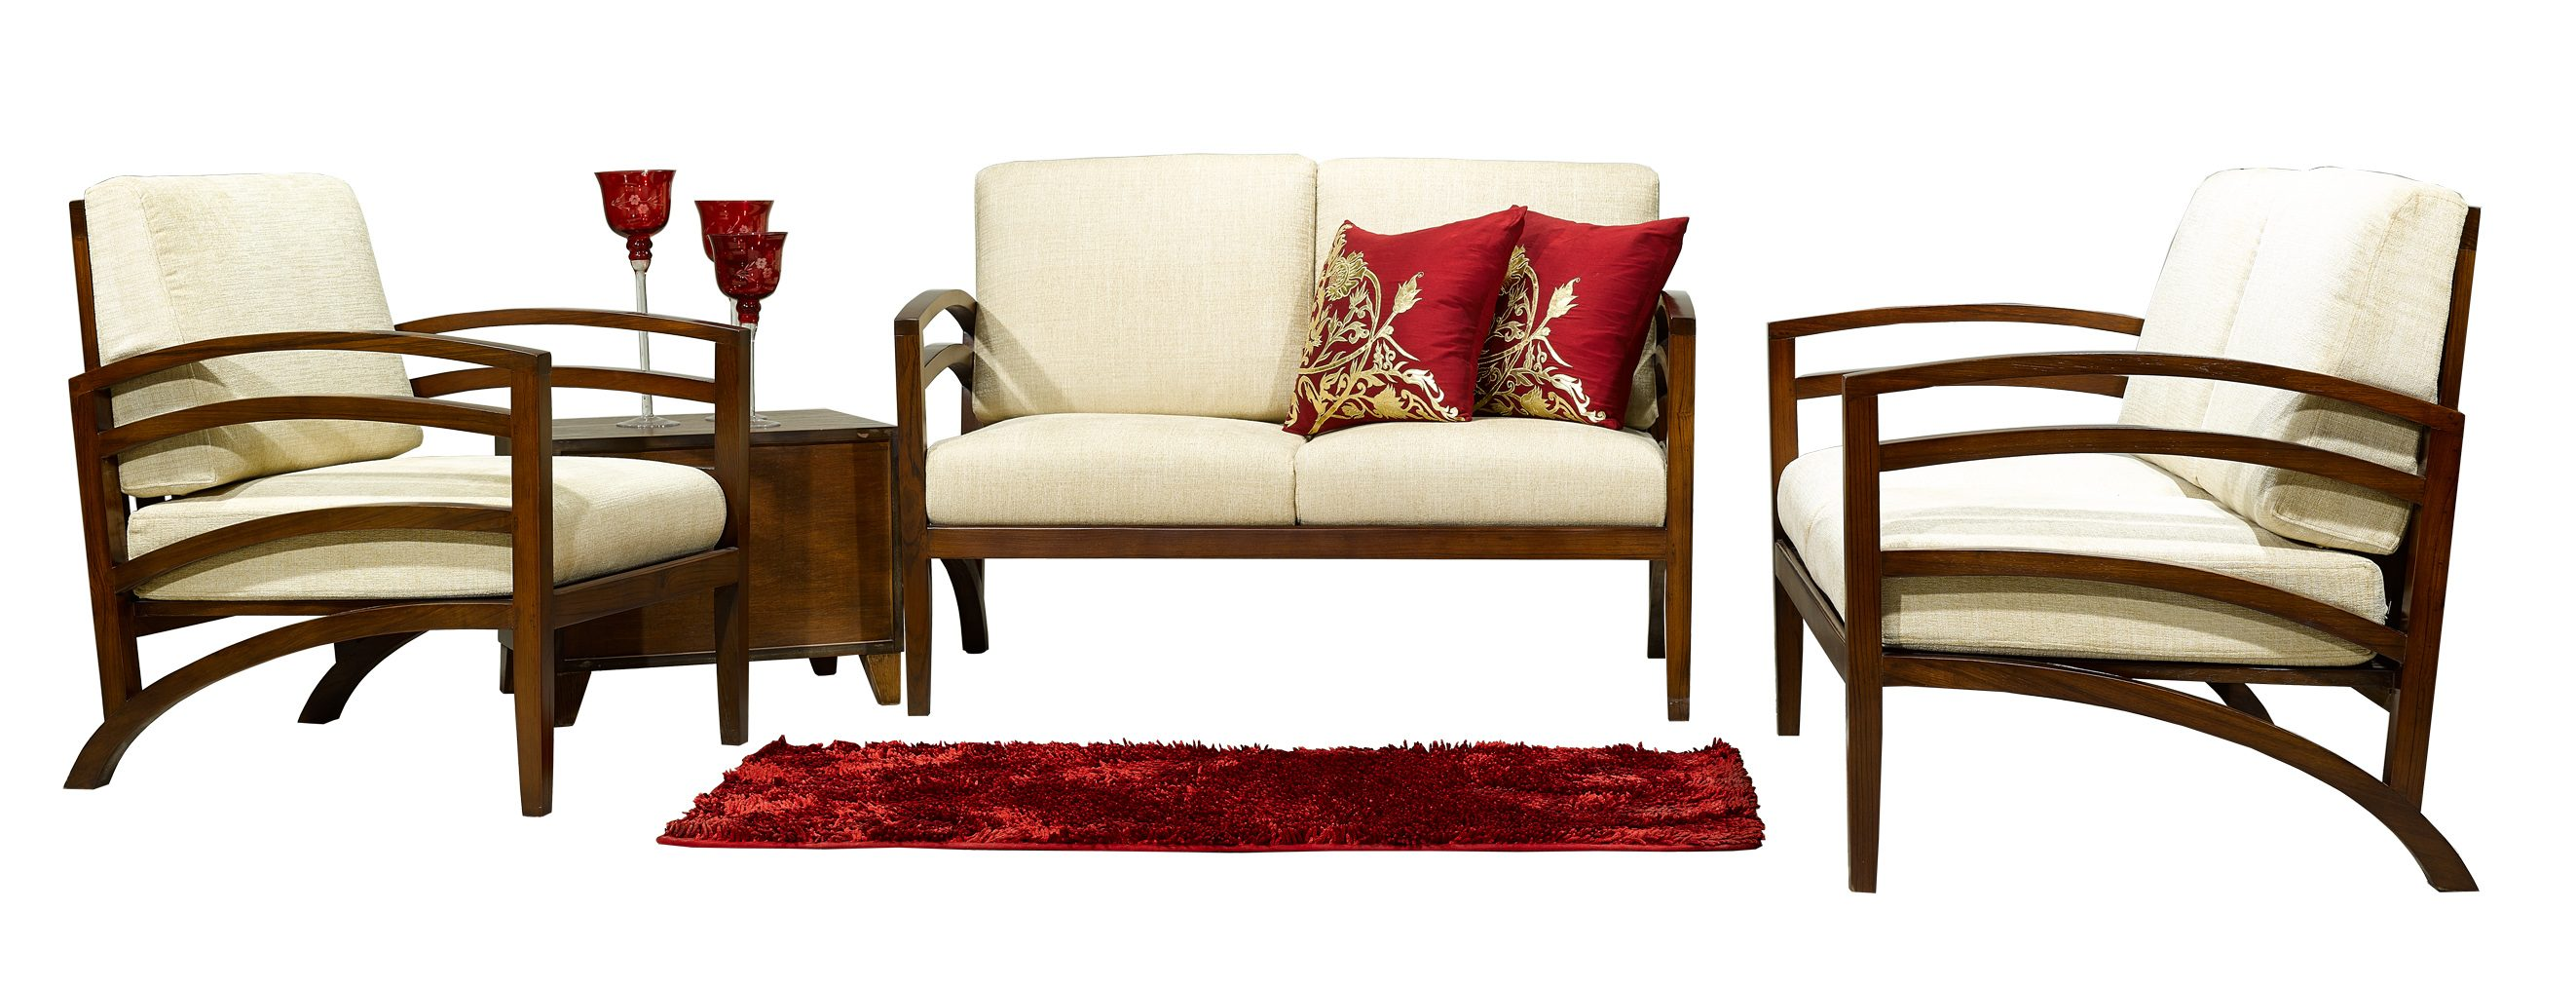 chair design bangladesh the fic exclusive and ultra slim sofa in modern home furniture